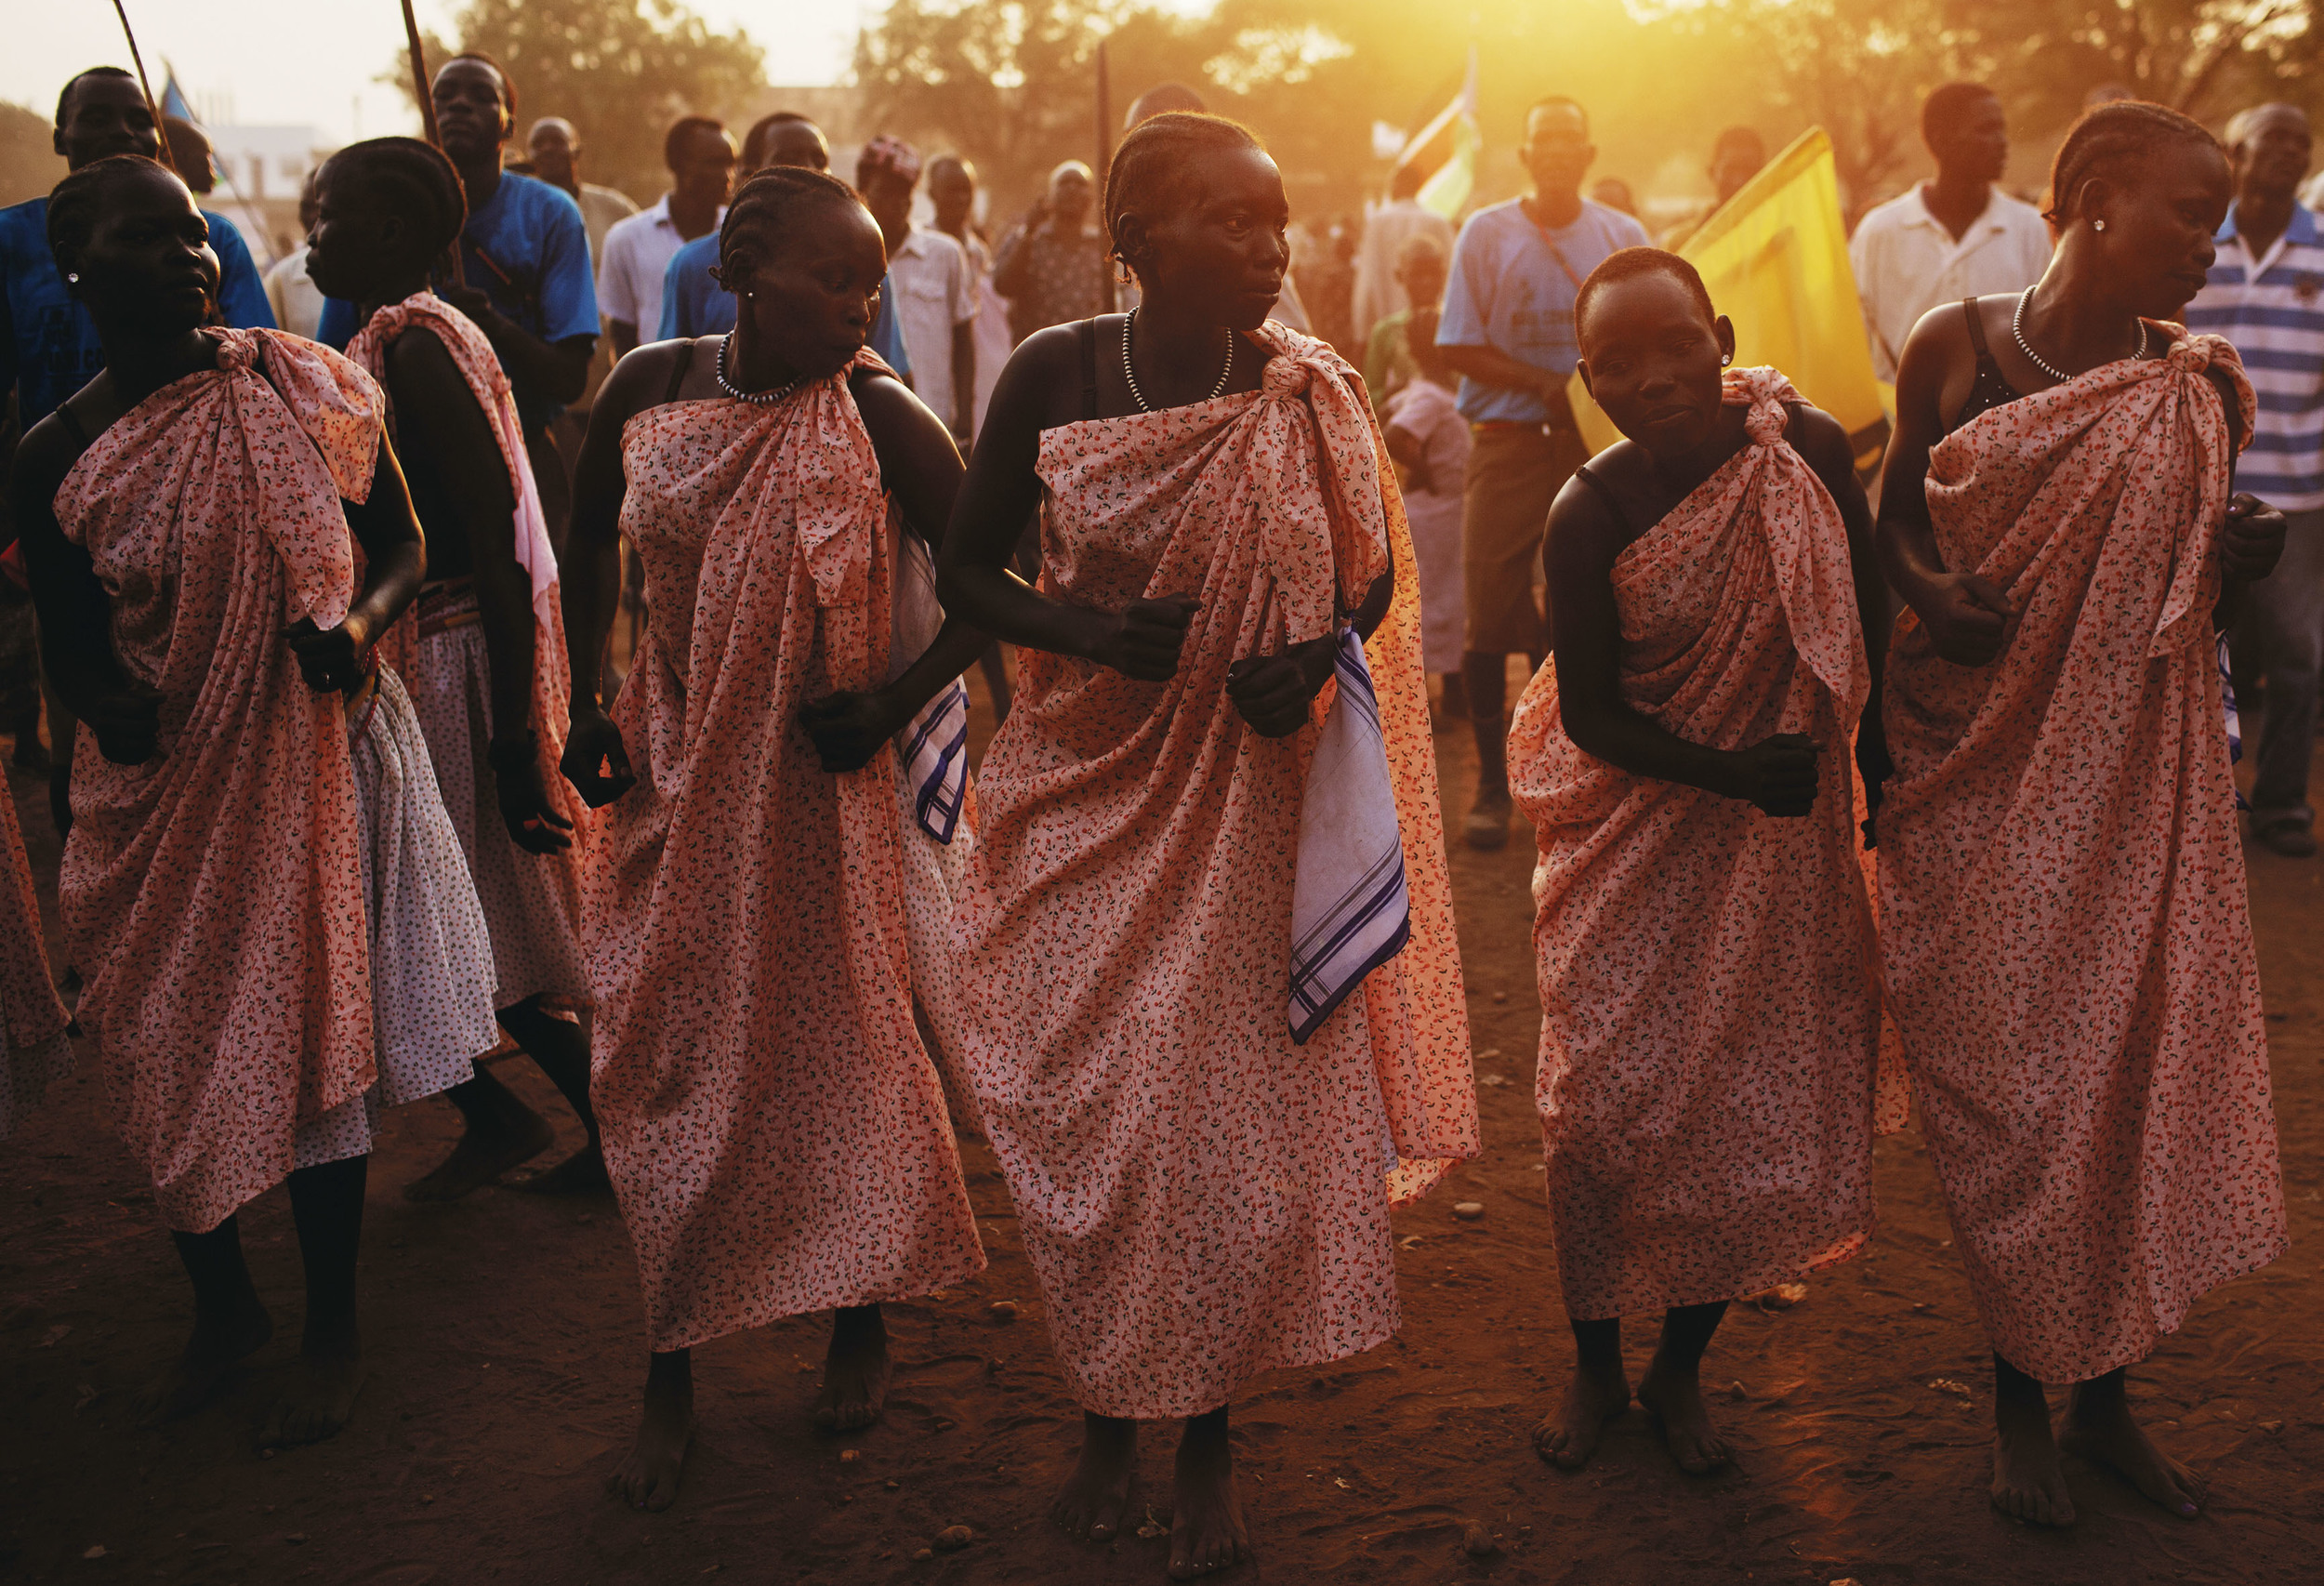 Women from the Bari community perform a traditional dance during celebrations on the eve of South Sudan's declaration of independence in Juba, southern Sudan, Friday, July 8, 2011. (AP Photo/David Azia)